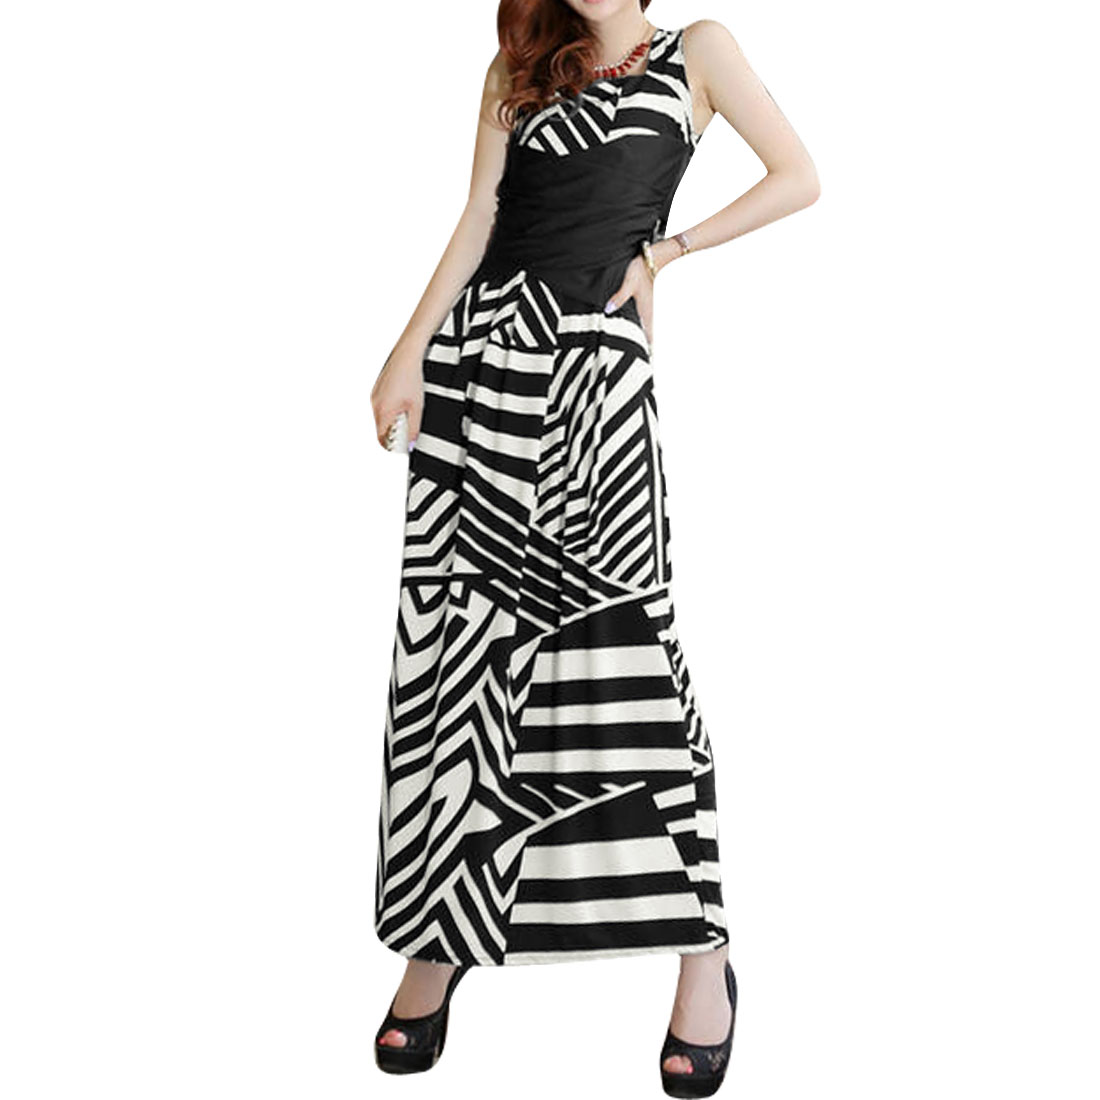 Women Stripes Pattern Square Neck Sleeveless Maxi Dress White Black S